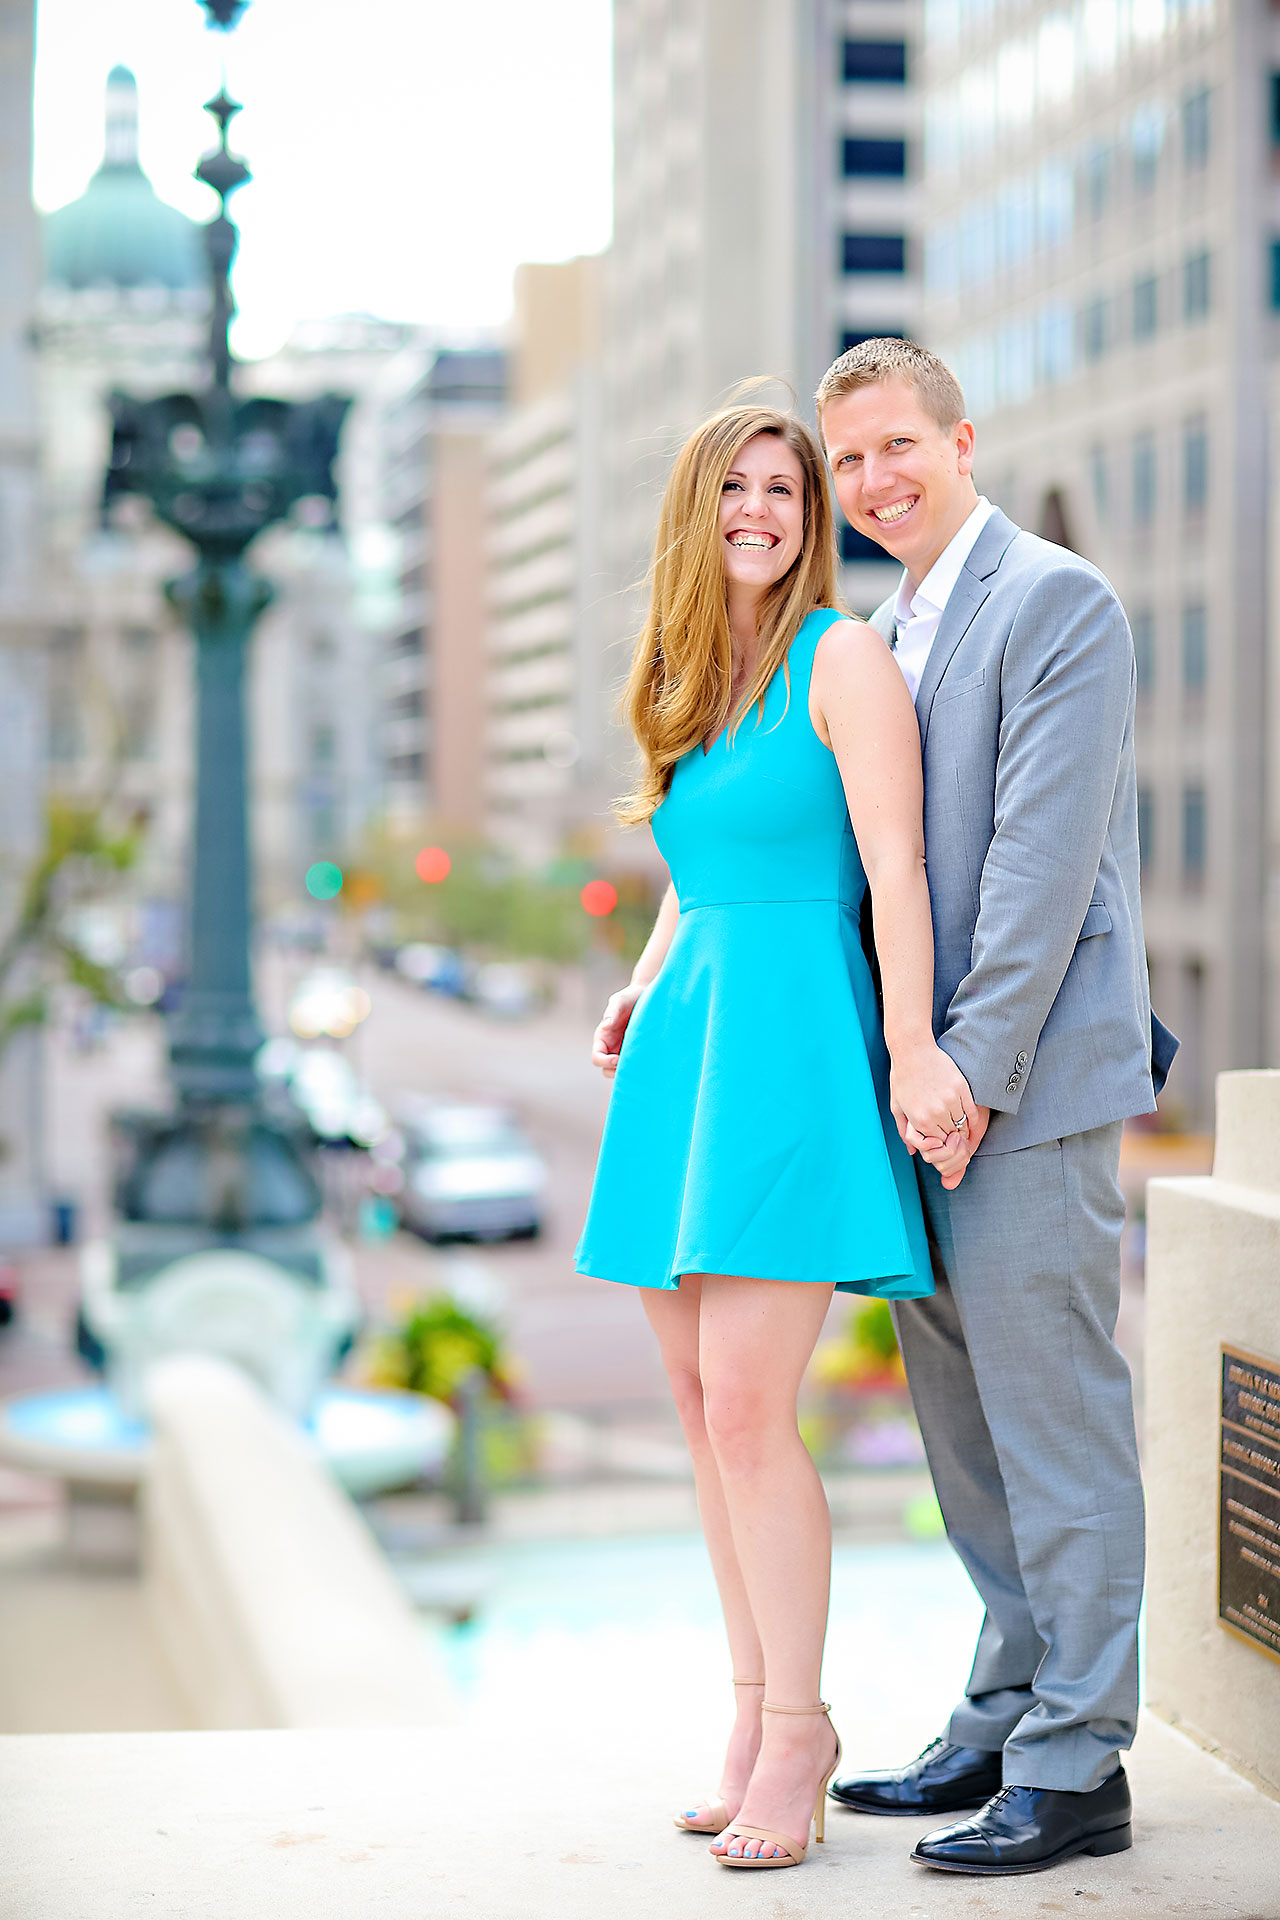 Chelsea Jeff Downtown Indy Engagement Session 085